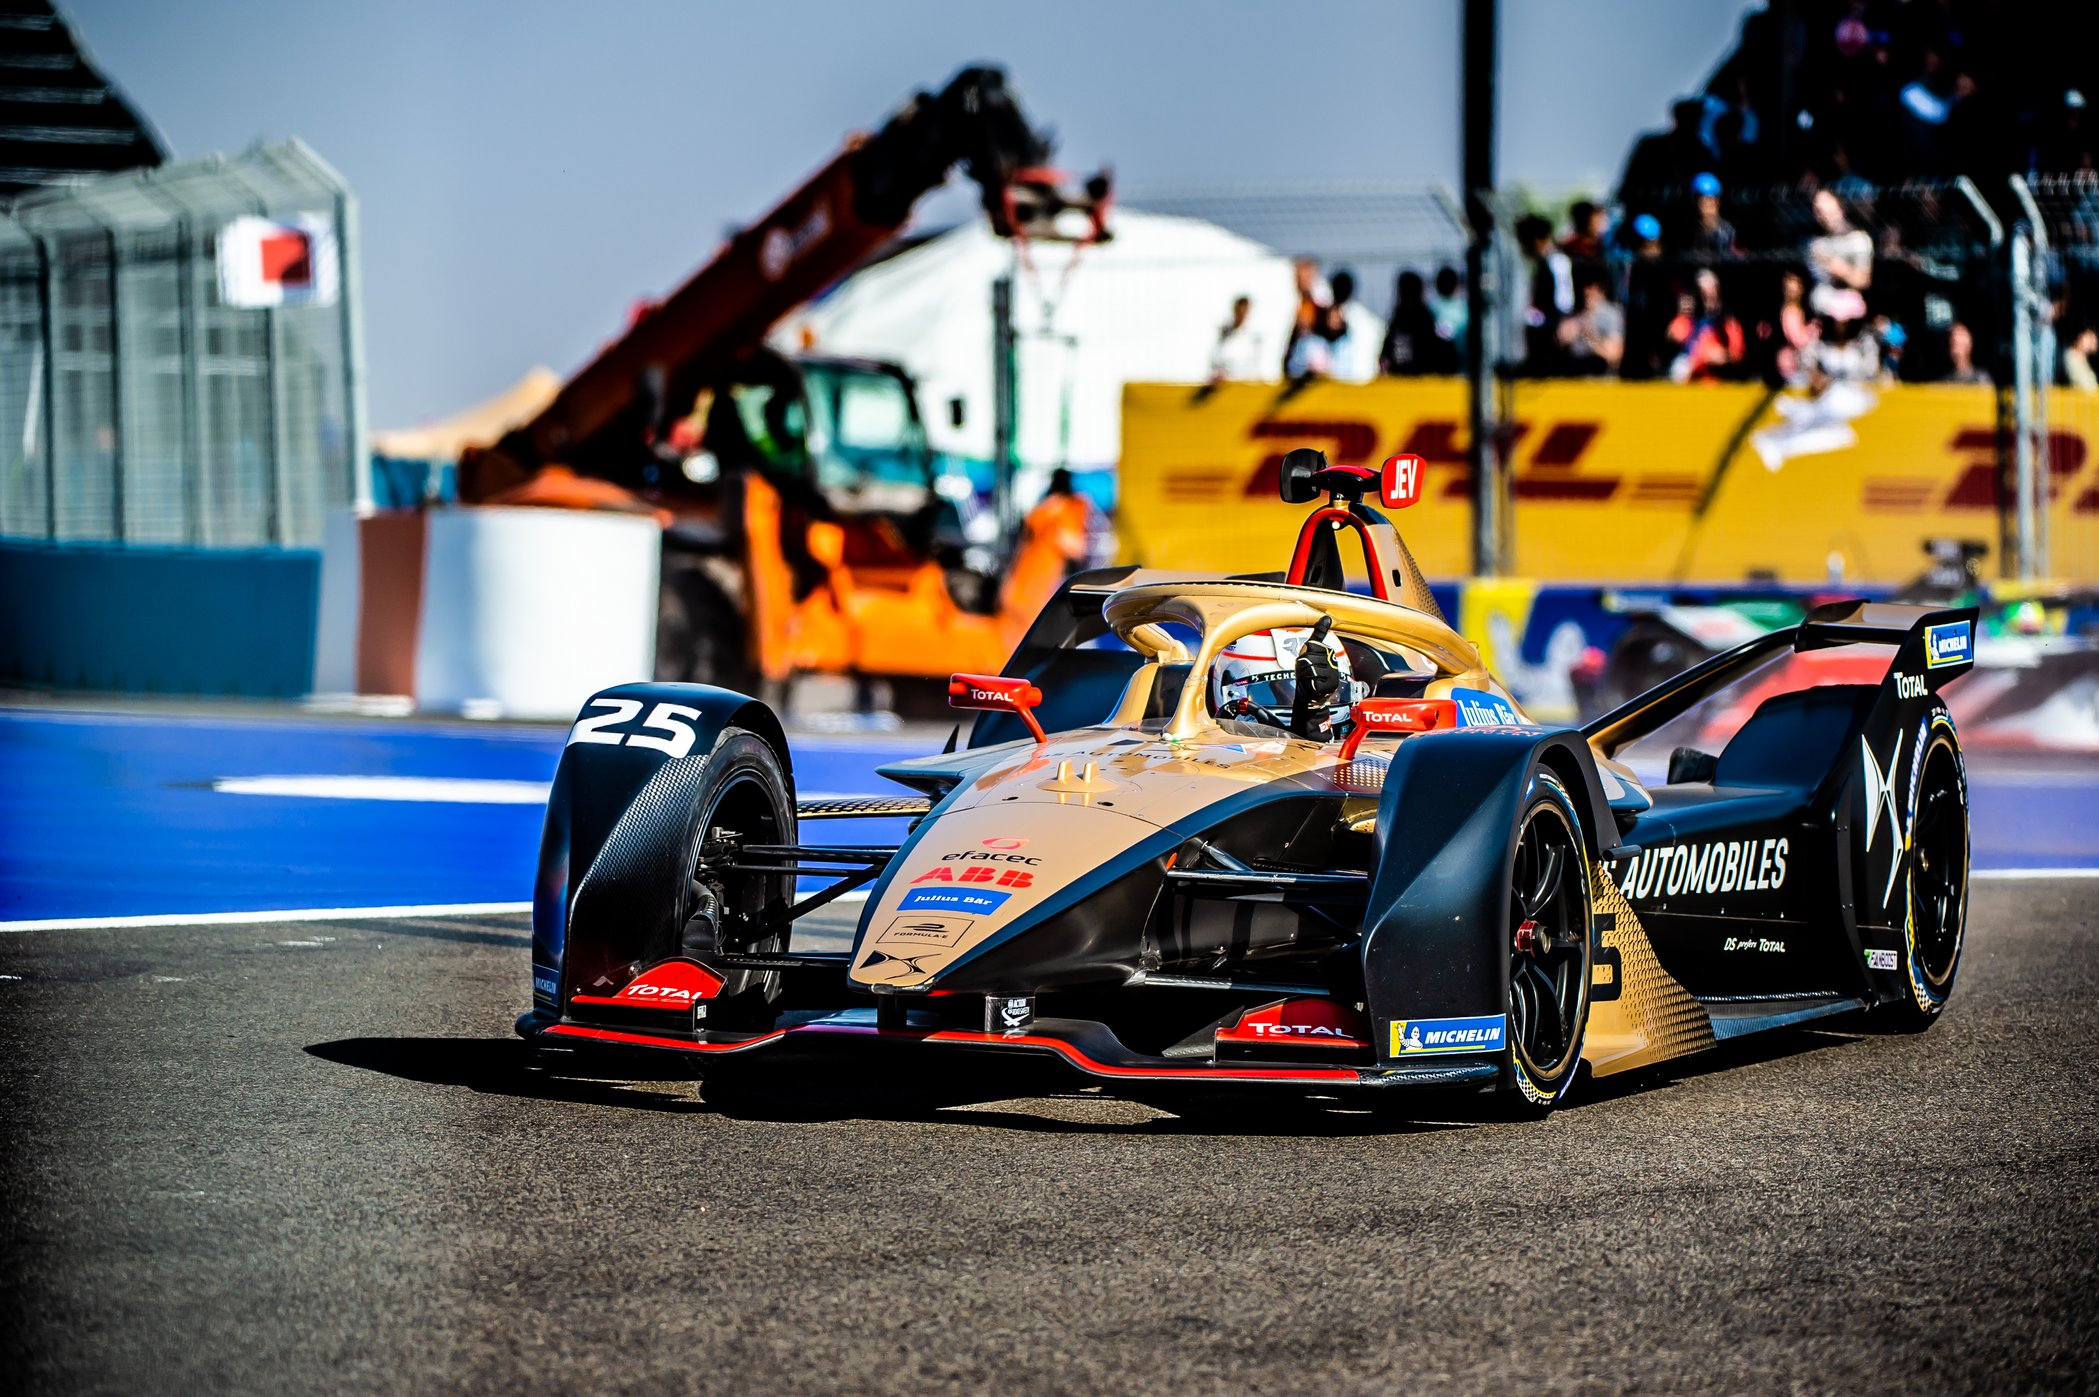 25 VERGNE Jean Eric (FRA), DS e-tense FE20 team DS TECHEETAH, action during the 2020 Formula E championship in Marrakesh, Morocco, from February 28-29 - Photo Jan Starek/MCH Photography